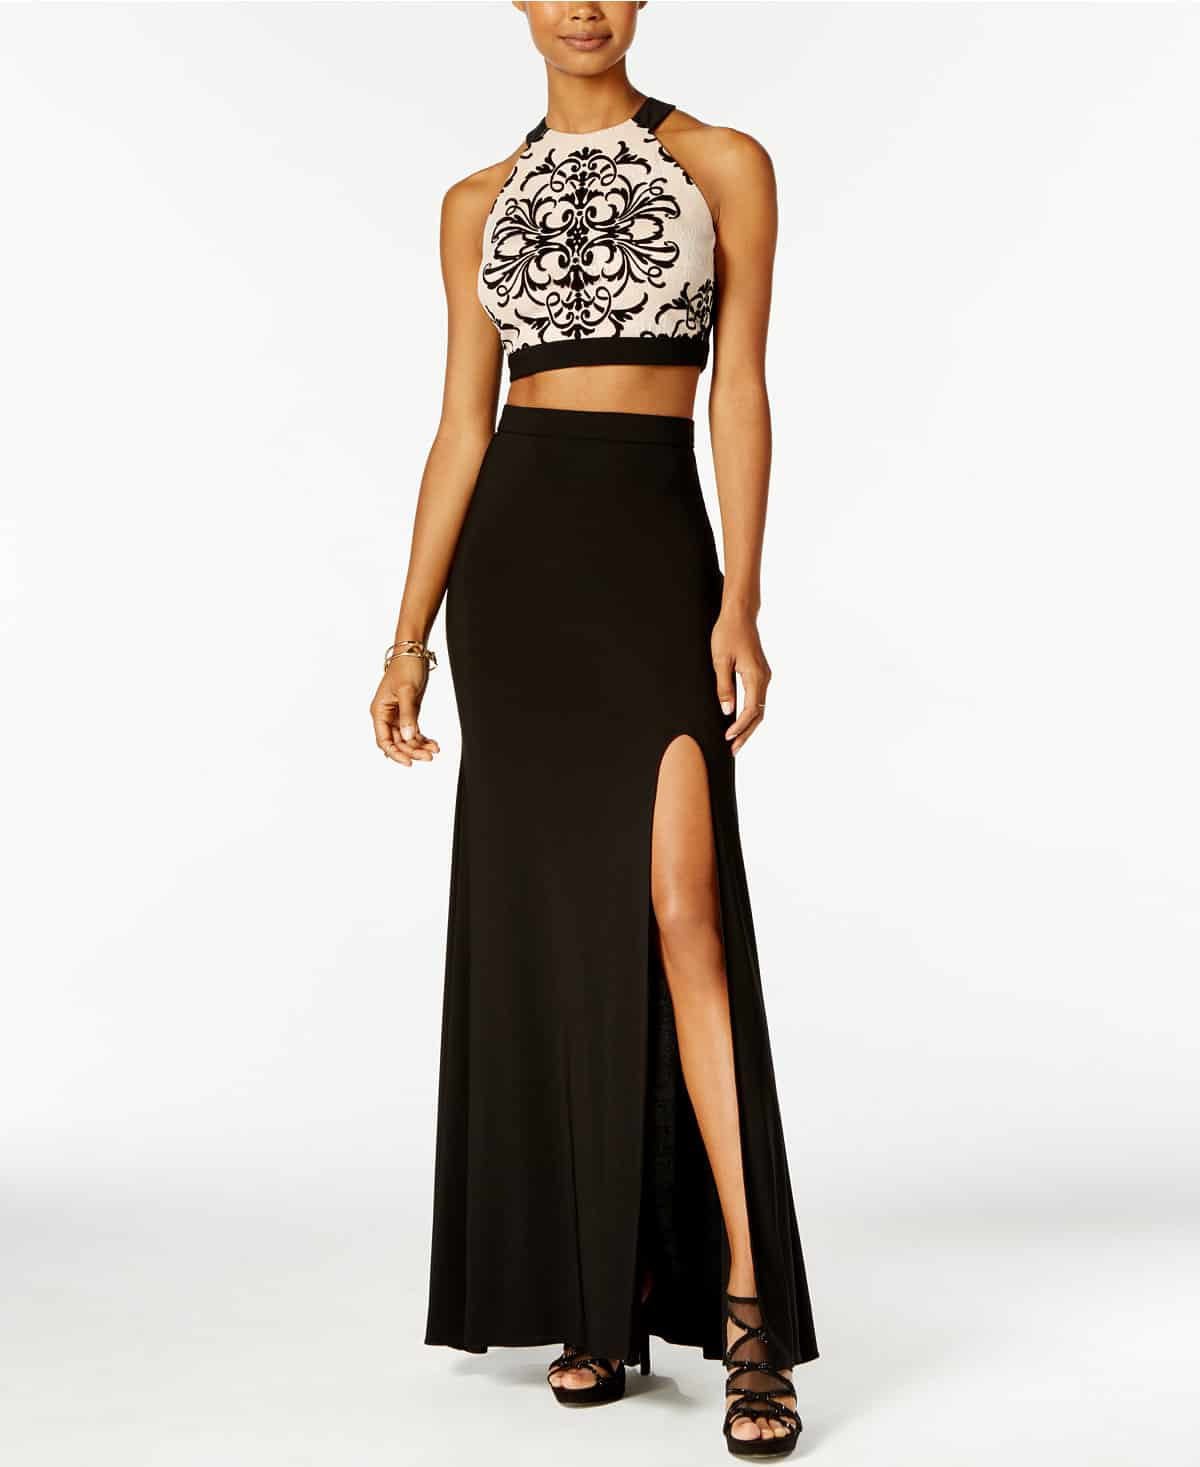 prom dress trends - the two-piece dress, a crop top and high-waited, full skirt